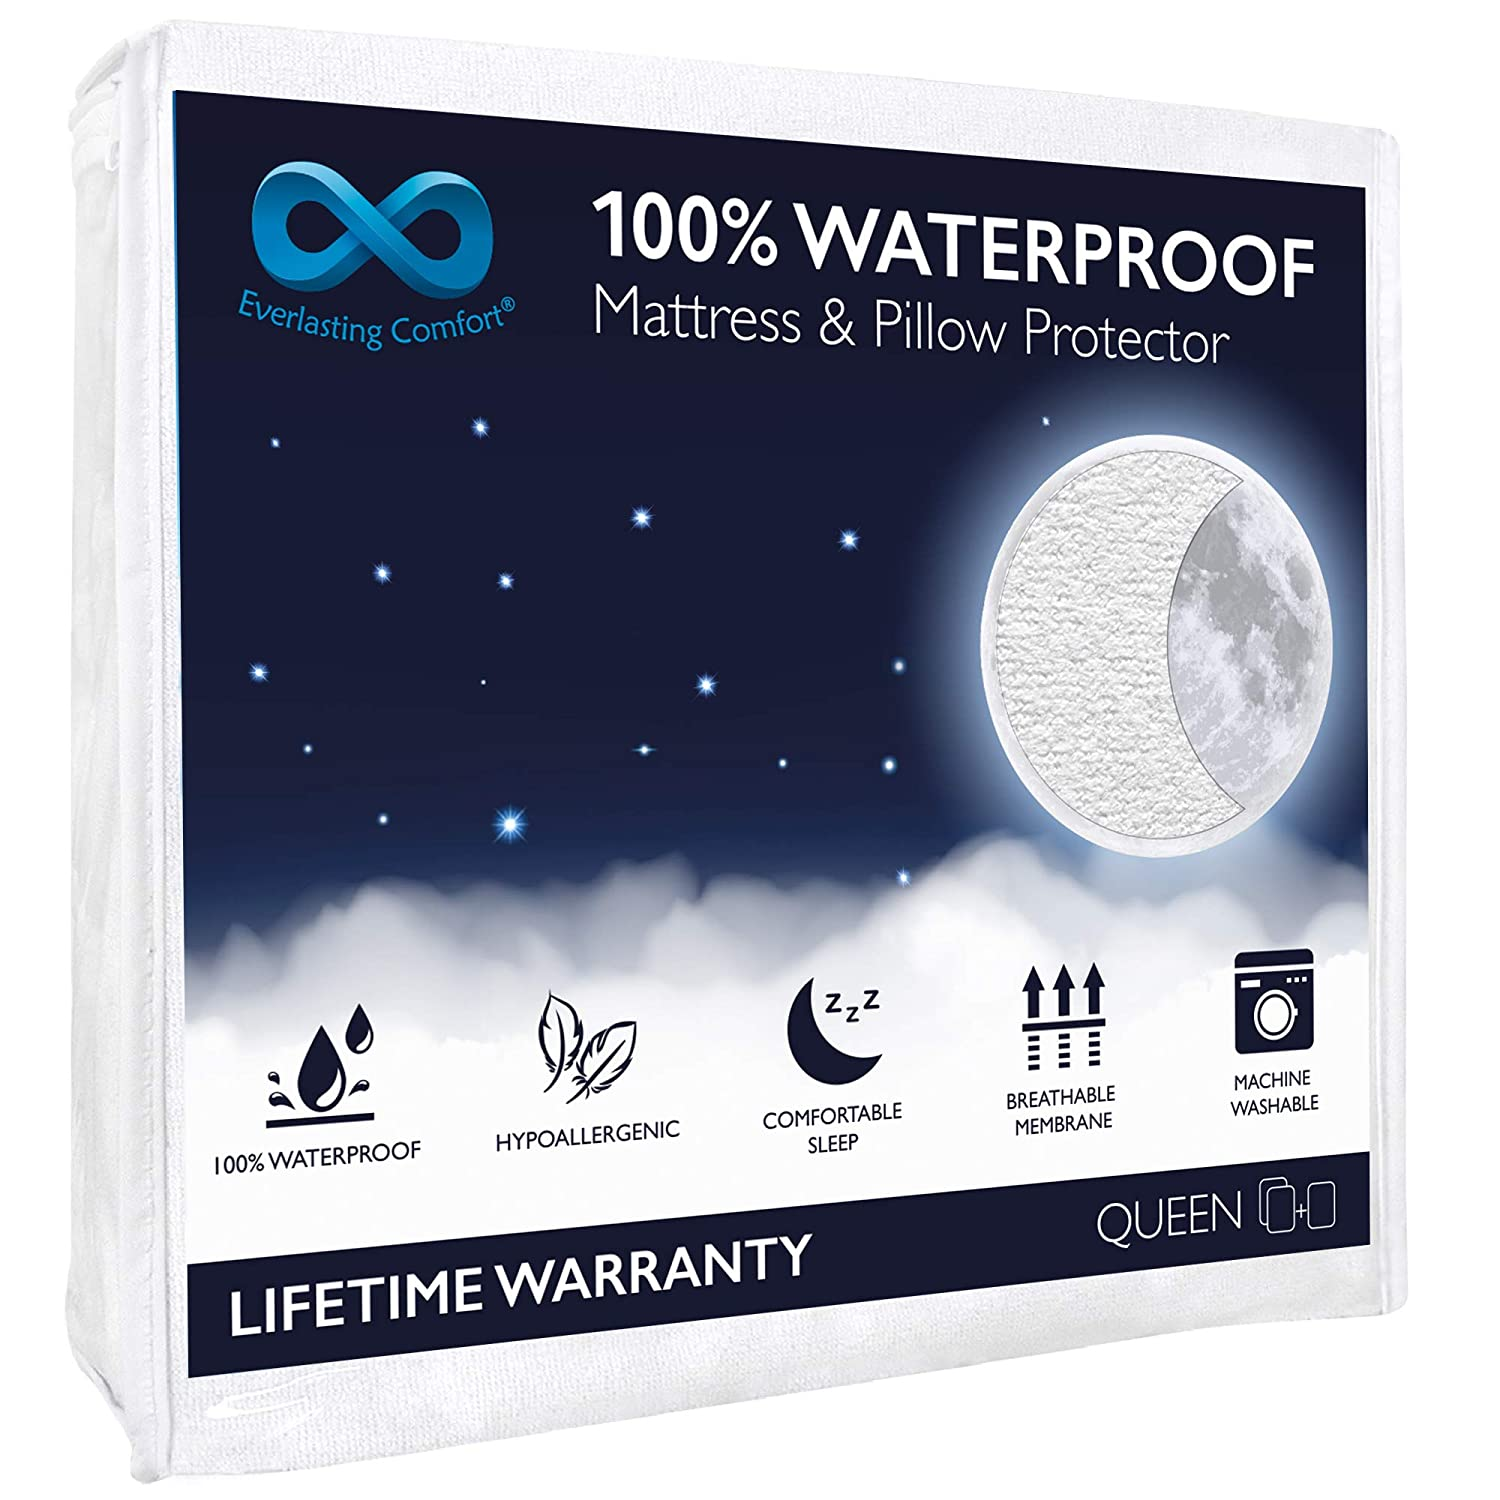 100% Waterproof Mattress Protector (Queen) and 2 Free Pillow Protectors